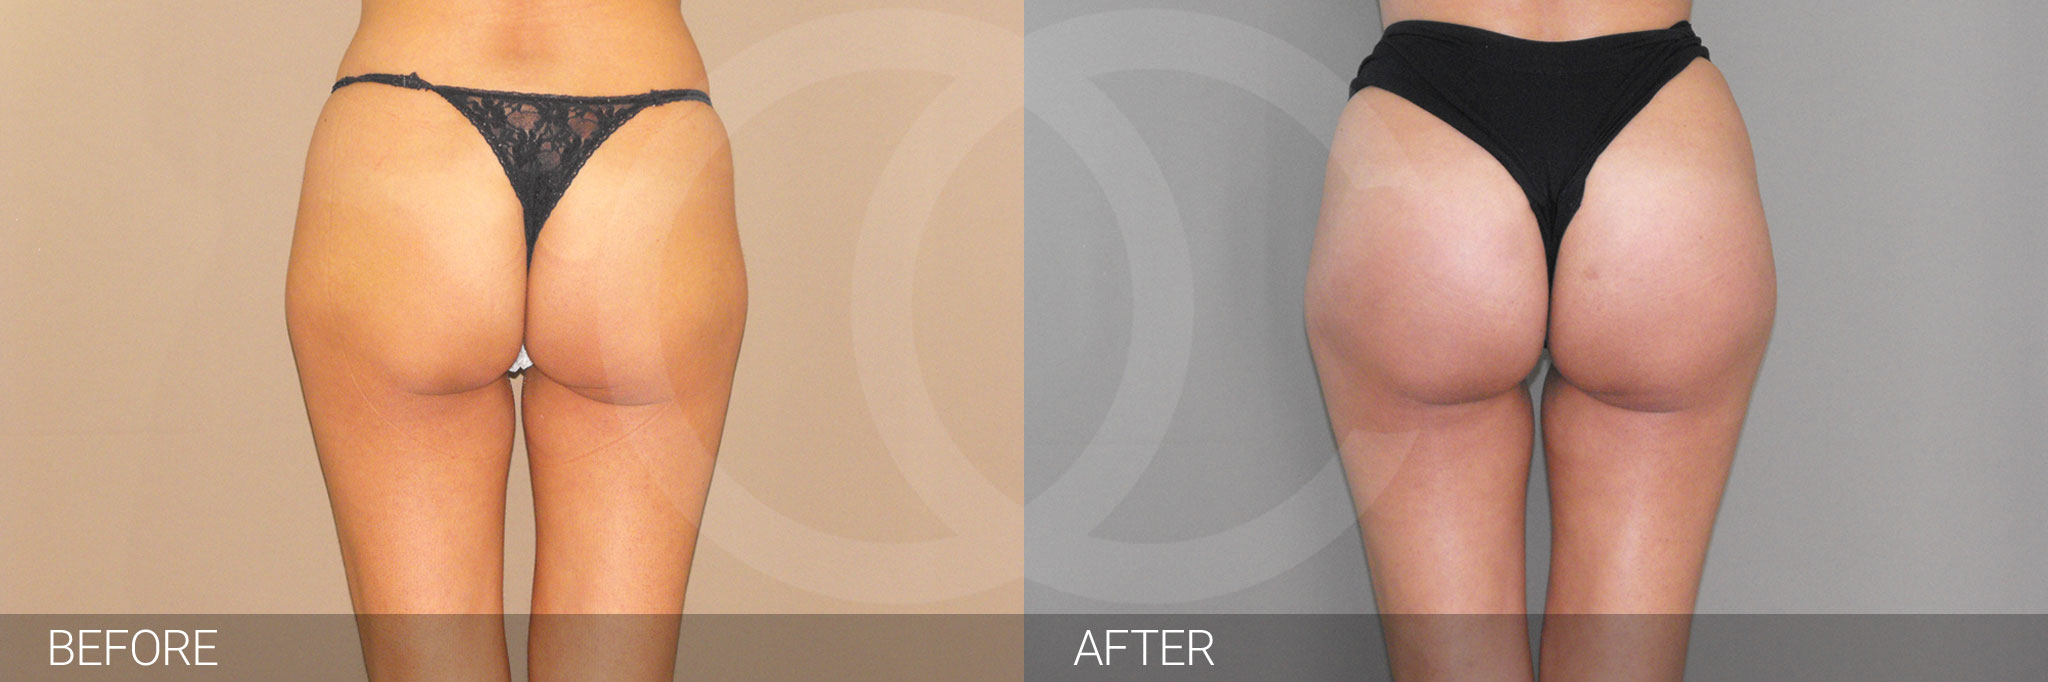 Buttock Augmentation GLUTEAL IMPLANTS ante/post-op I